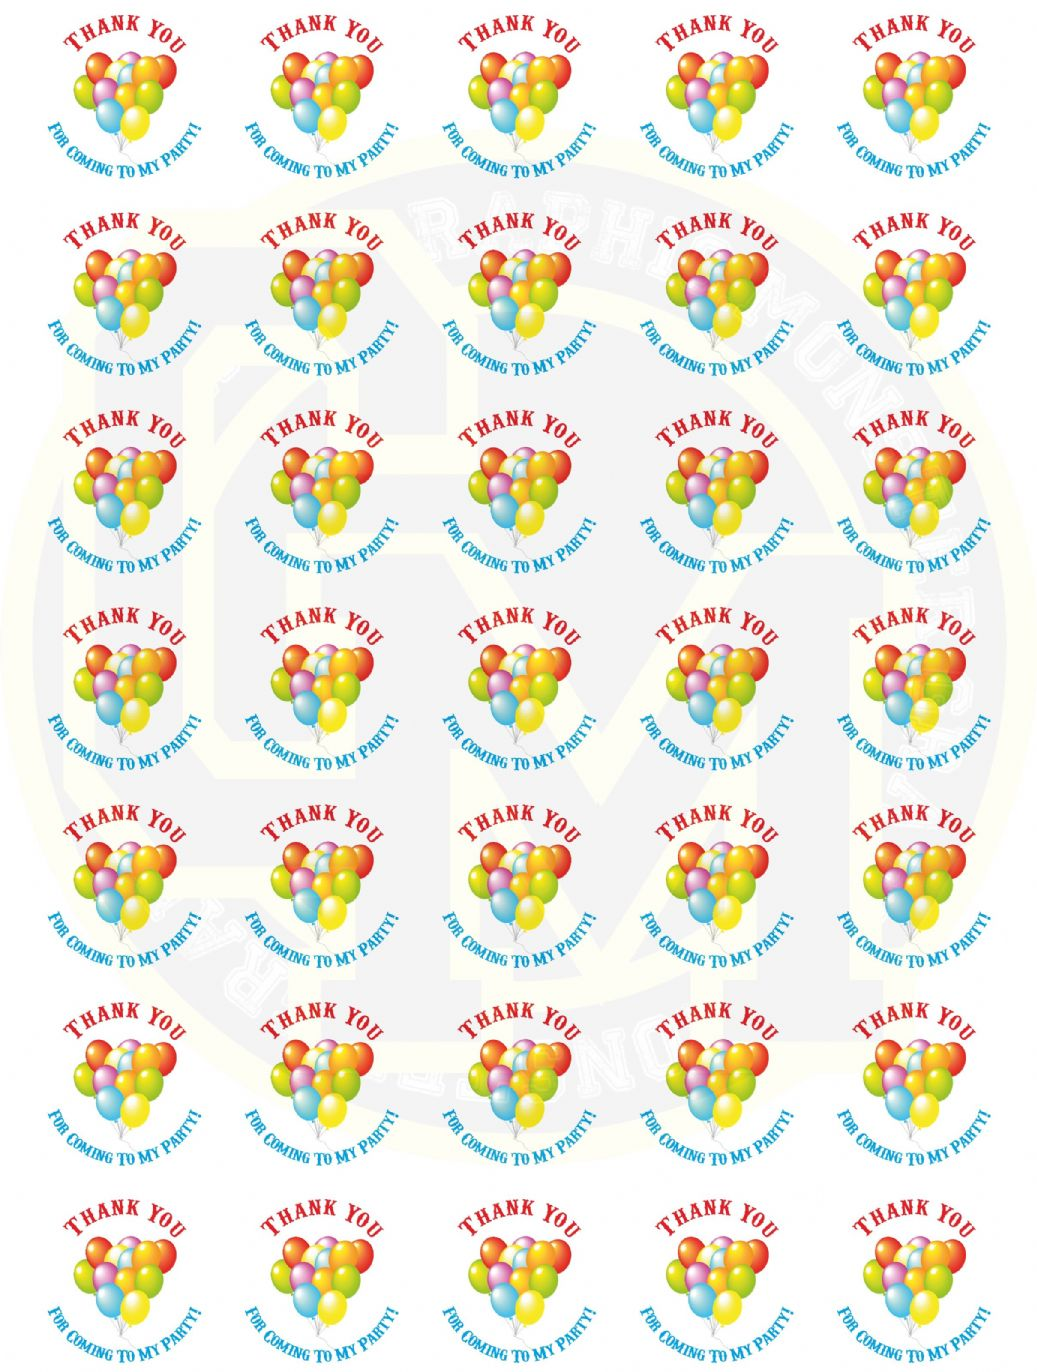 Unisex Birthday Stickers 37mm Round Paper Thank You For